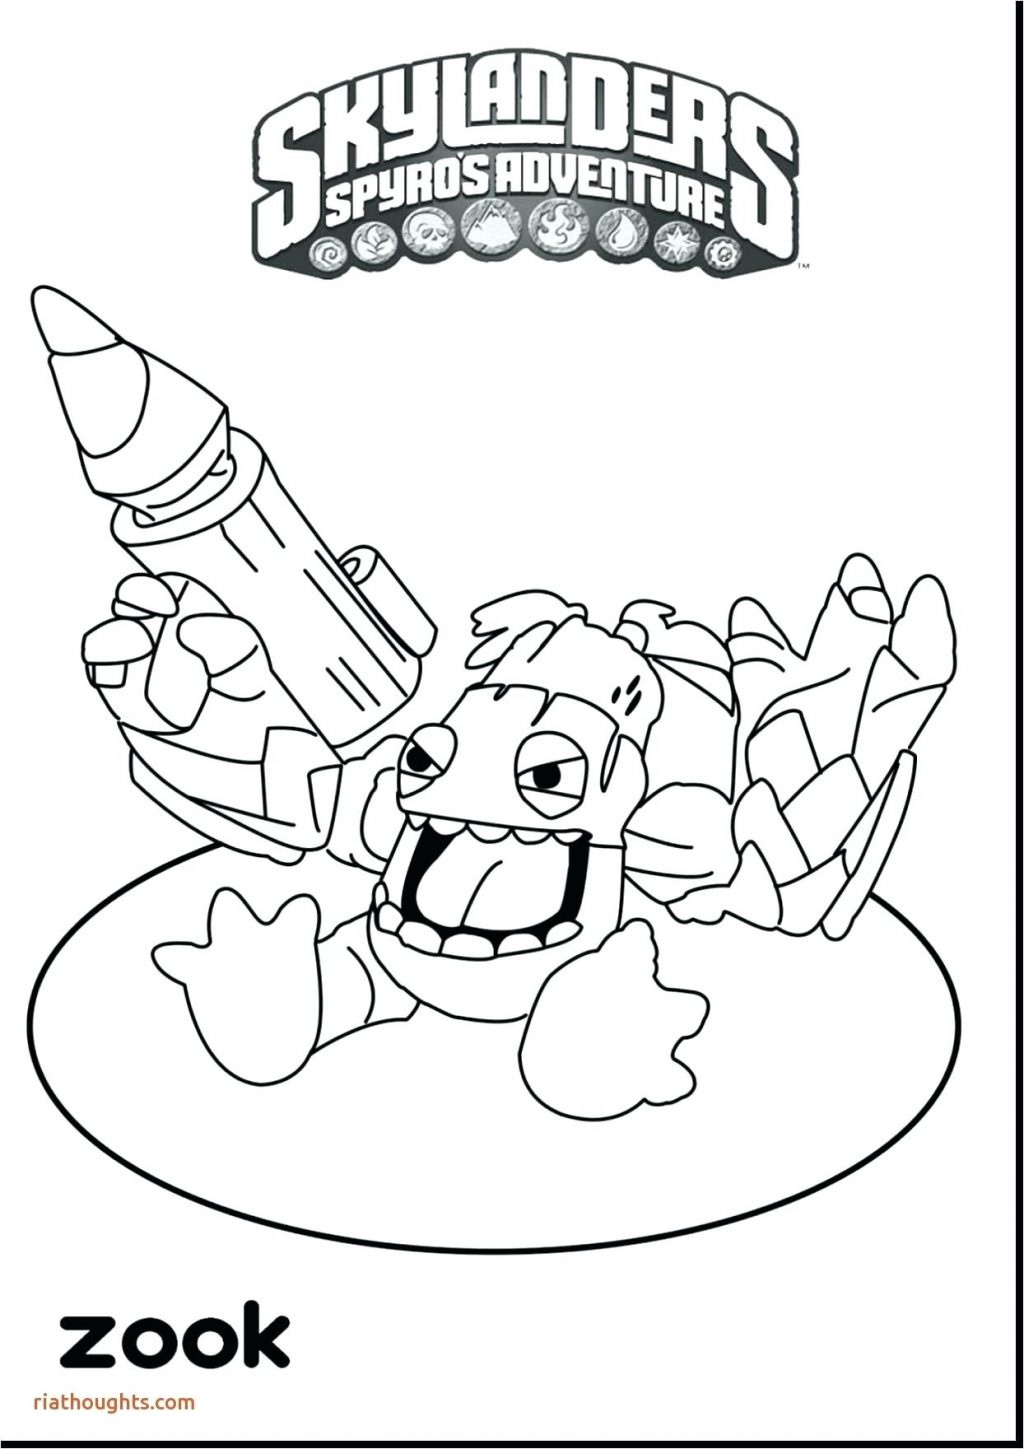 Coloring Page ~ Coloring Page Barn Printables Pages Of Farm Animals - Free Printable Barn Coloring Pages